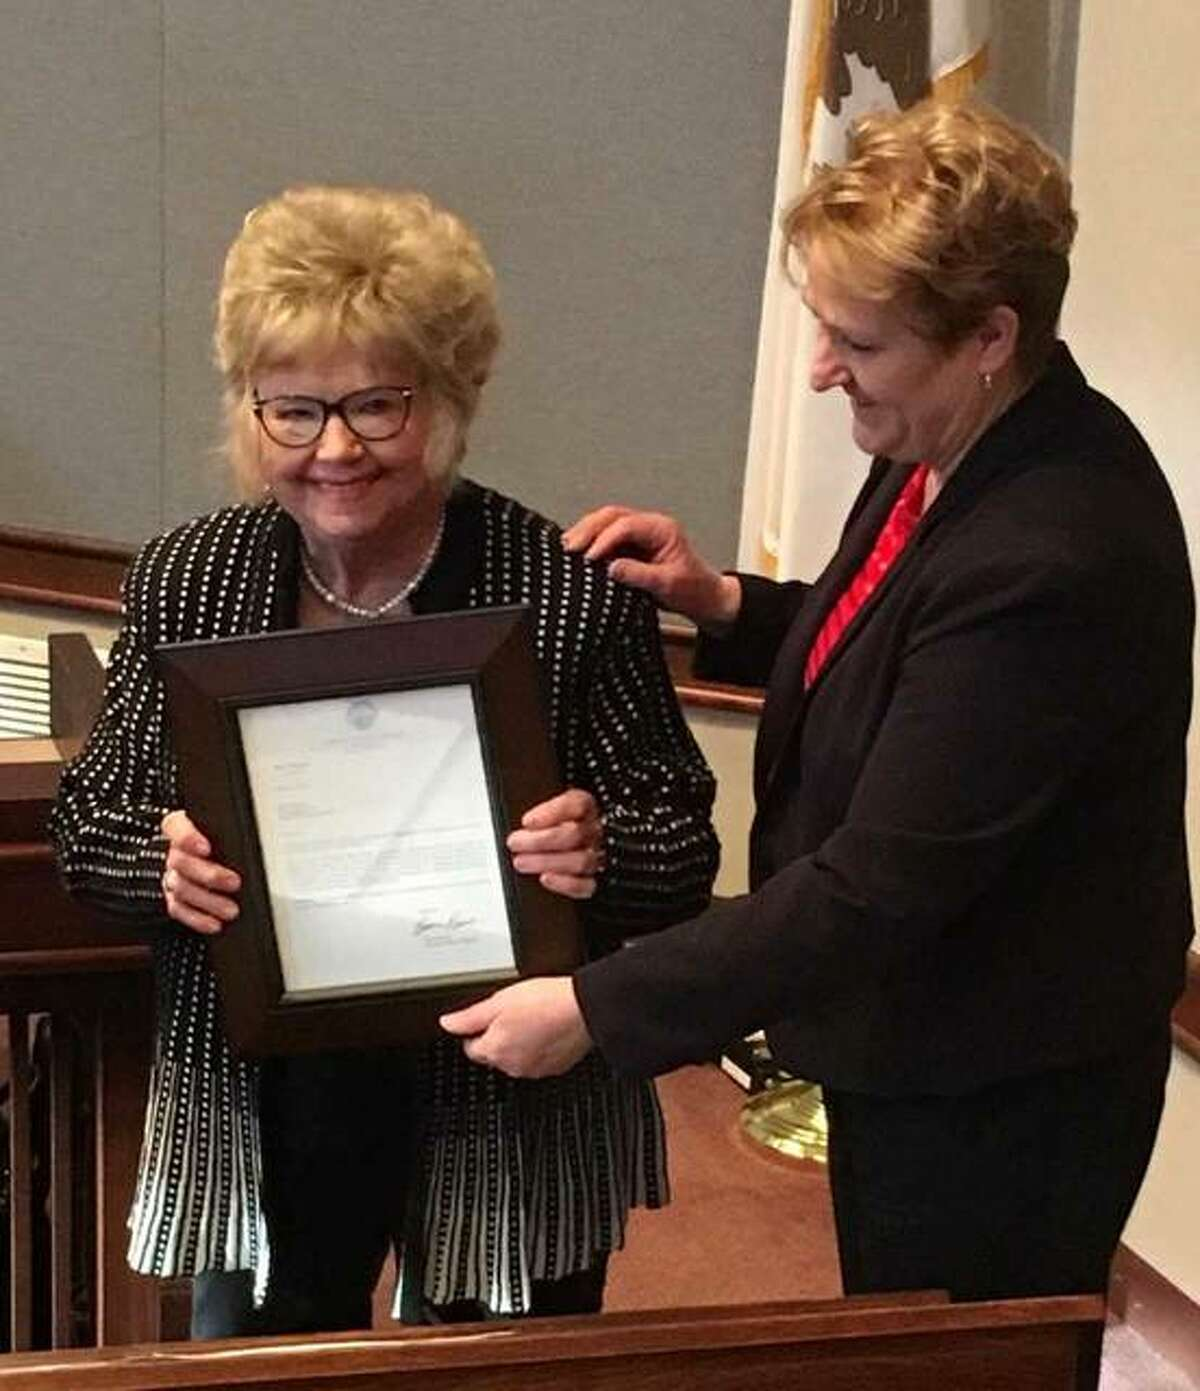 Director of the Illinois Department of Aging Jean Bohnhoff presents Madison County Board member Helen Hawkins, of Granite City, with a letter of recognition by Governor Bruce Rauner Wednesday for her induction into the Illinois Senior Hall of Fame.